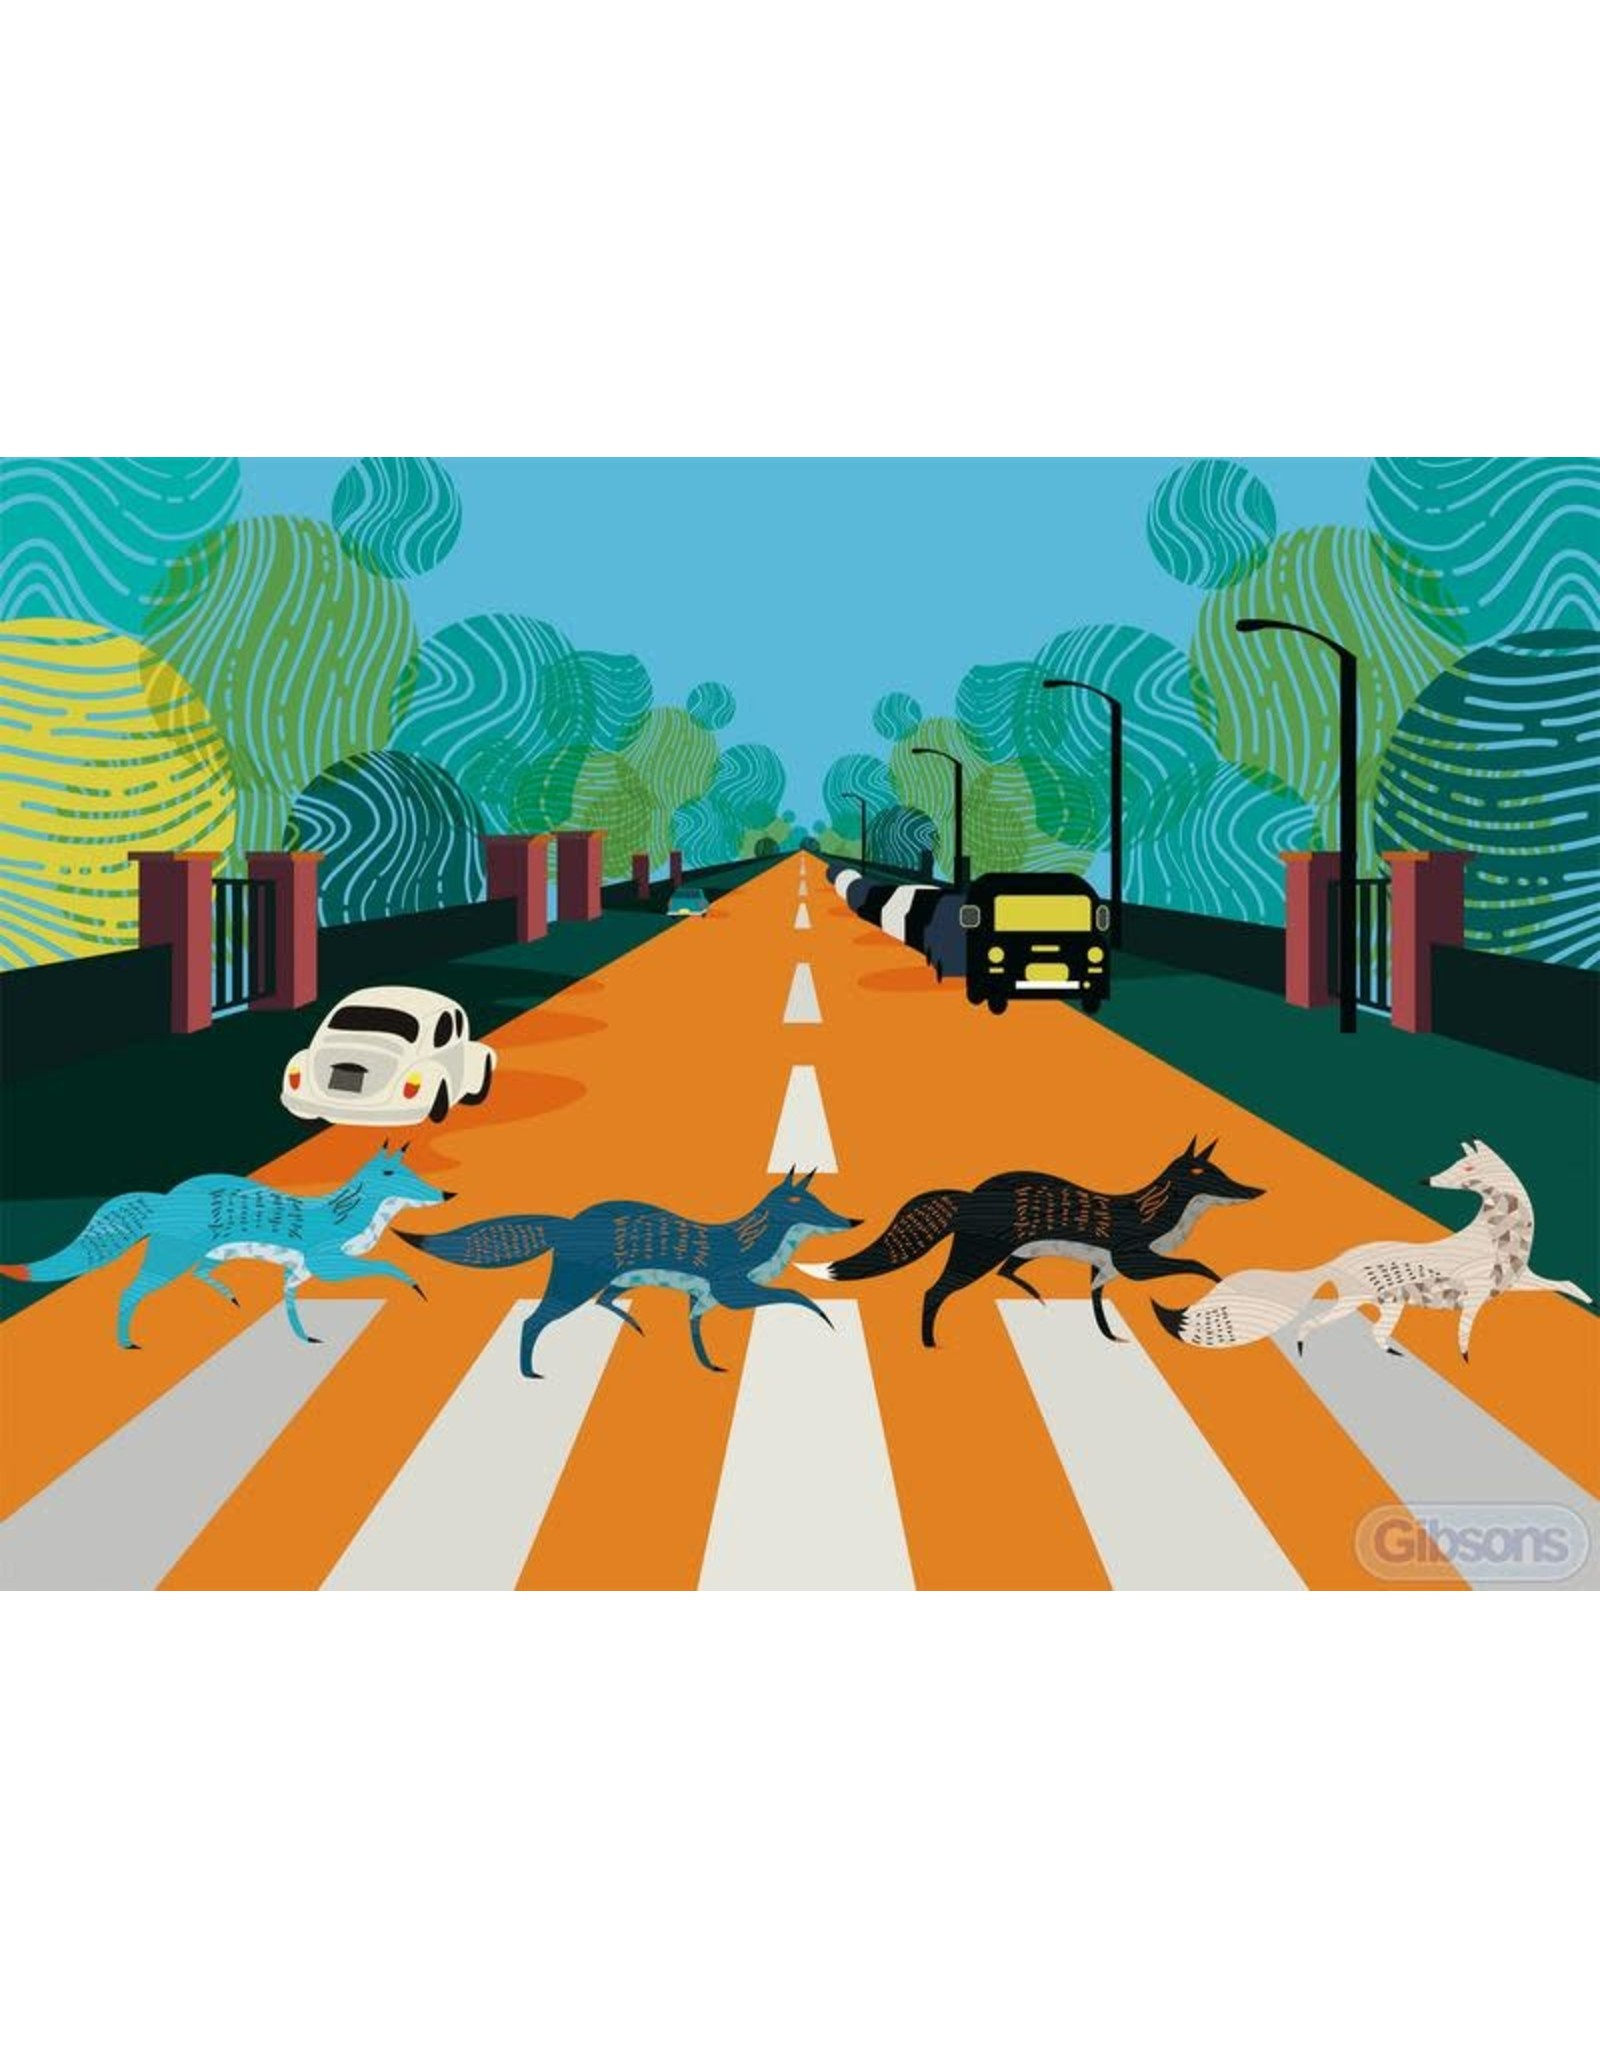 Gibsons Gibsons Abbey Road Foxes 500 Pieces